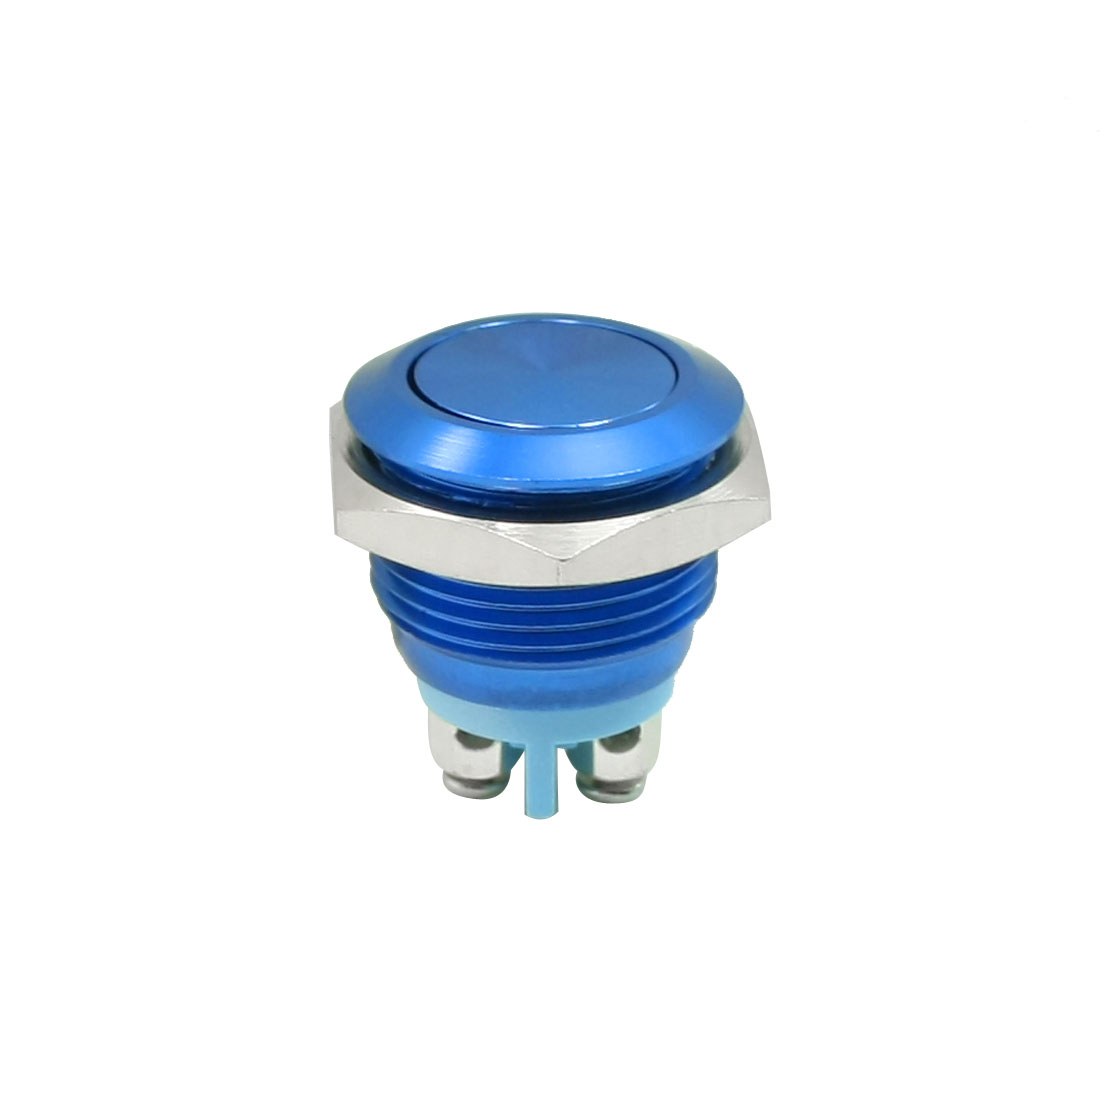 Panel Mounted SPST NO Momentary Push Button Switch Blue AC250V 3A